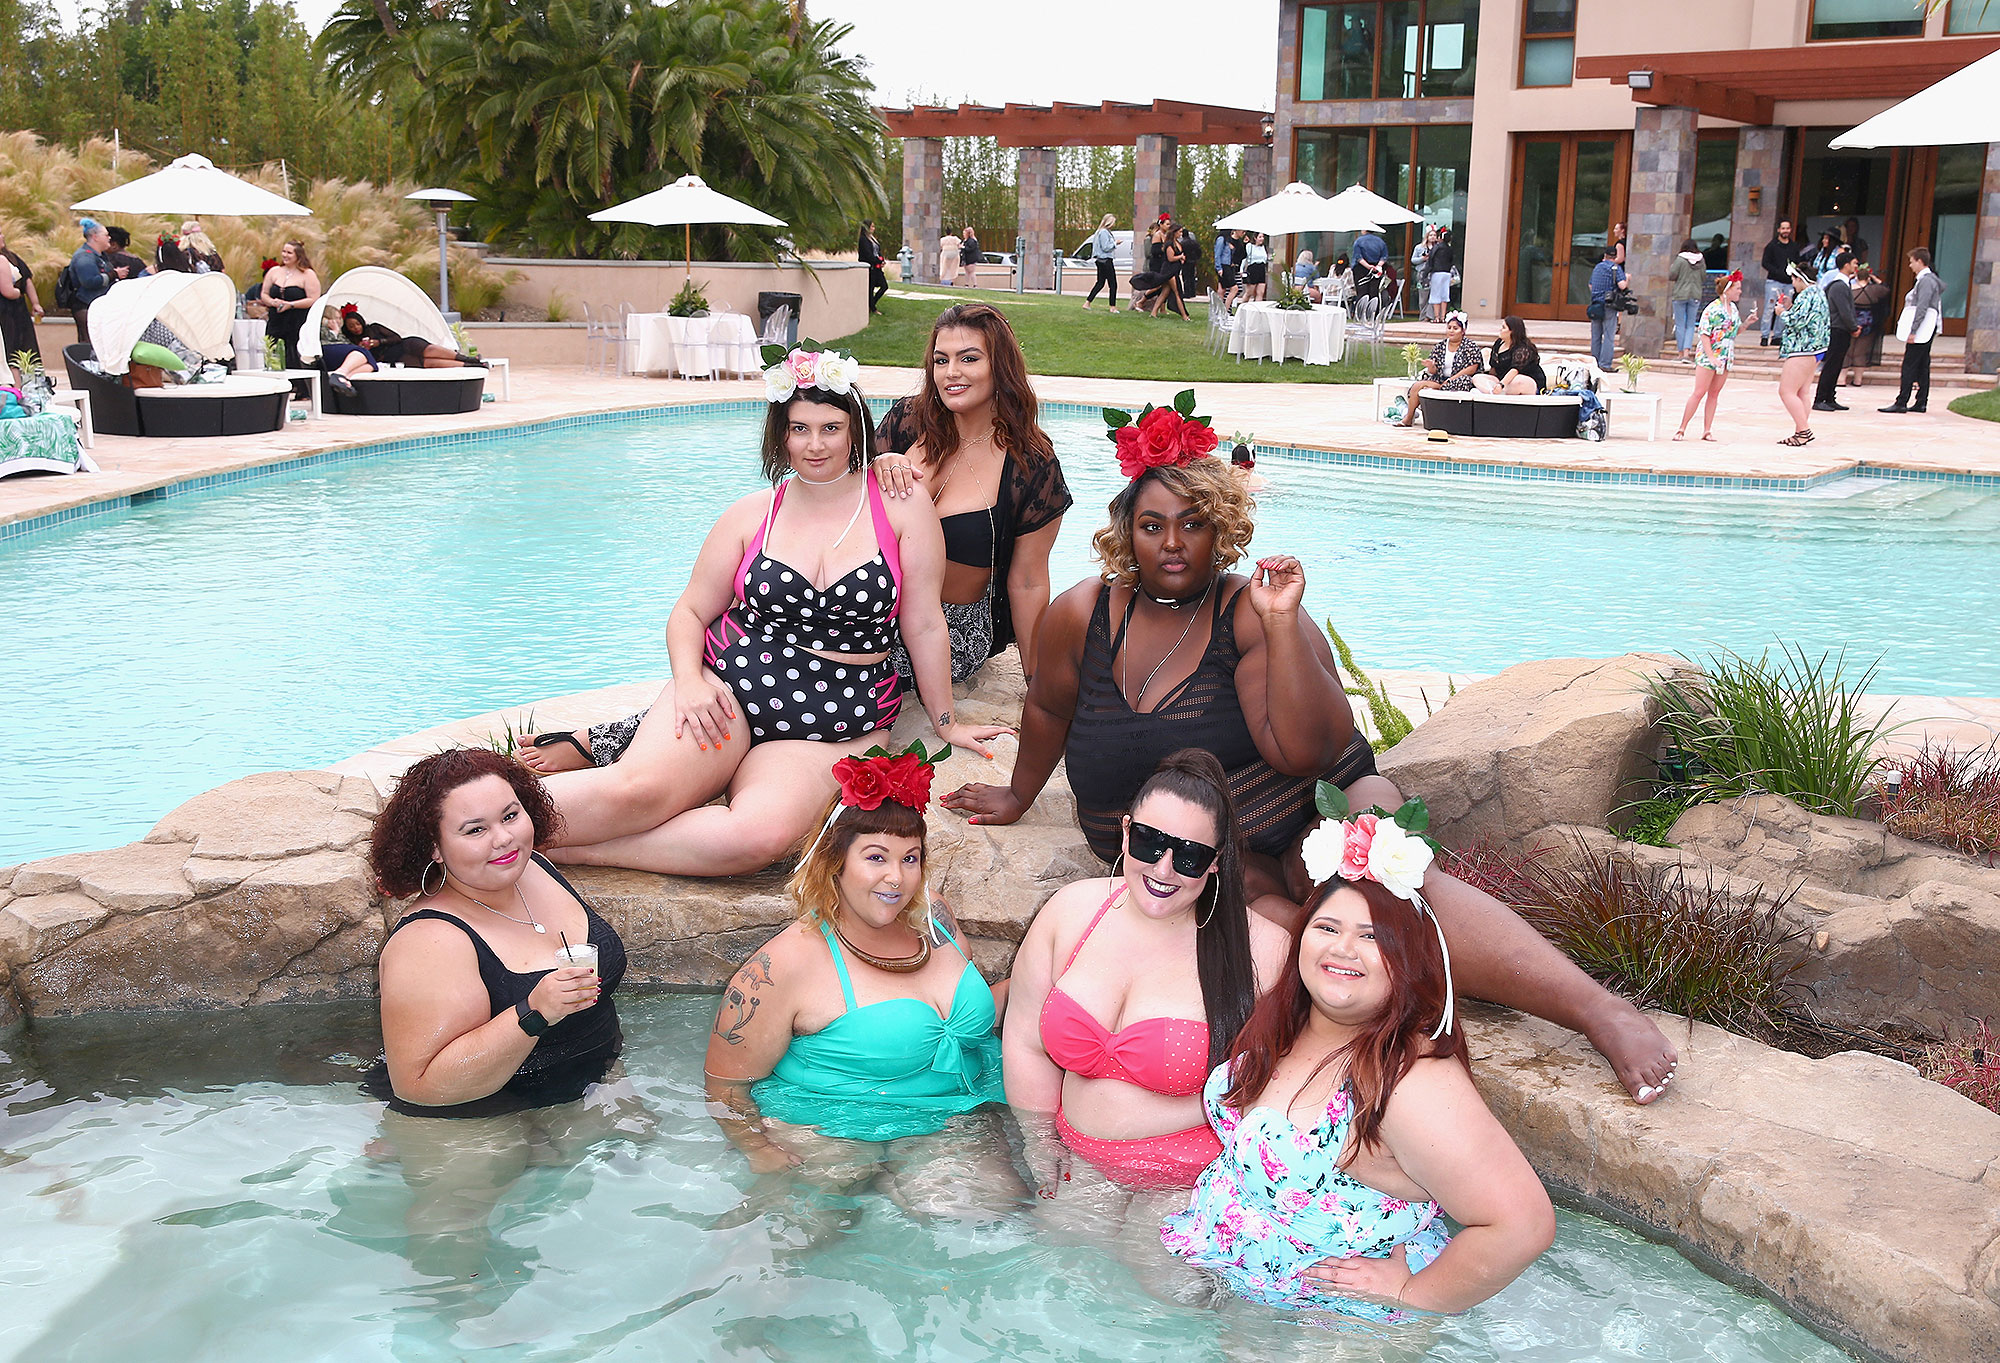 Torrid #TheseCurves Pool Party at The Monaco Mansion in Orange County